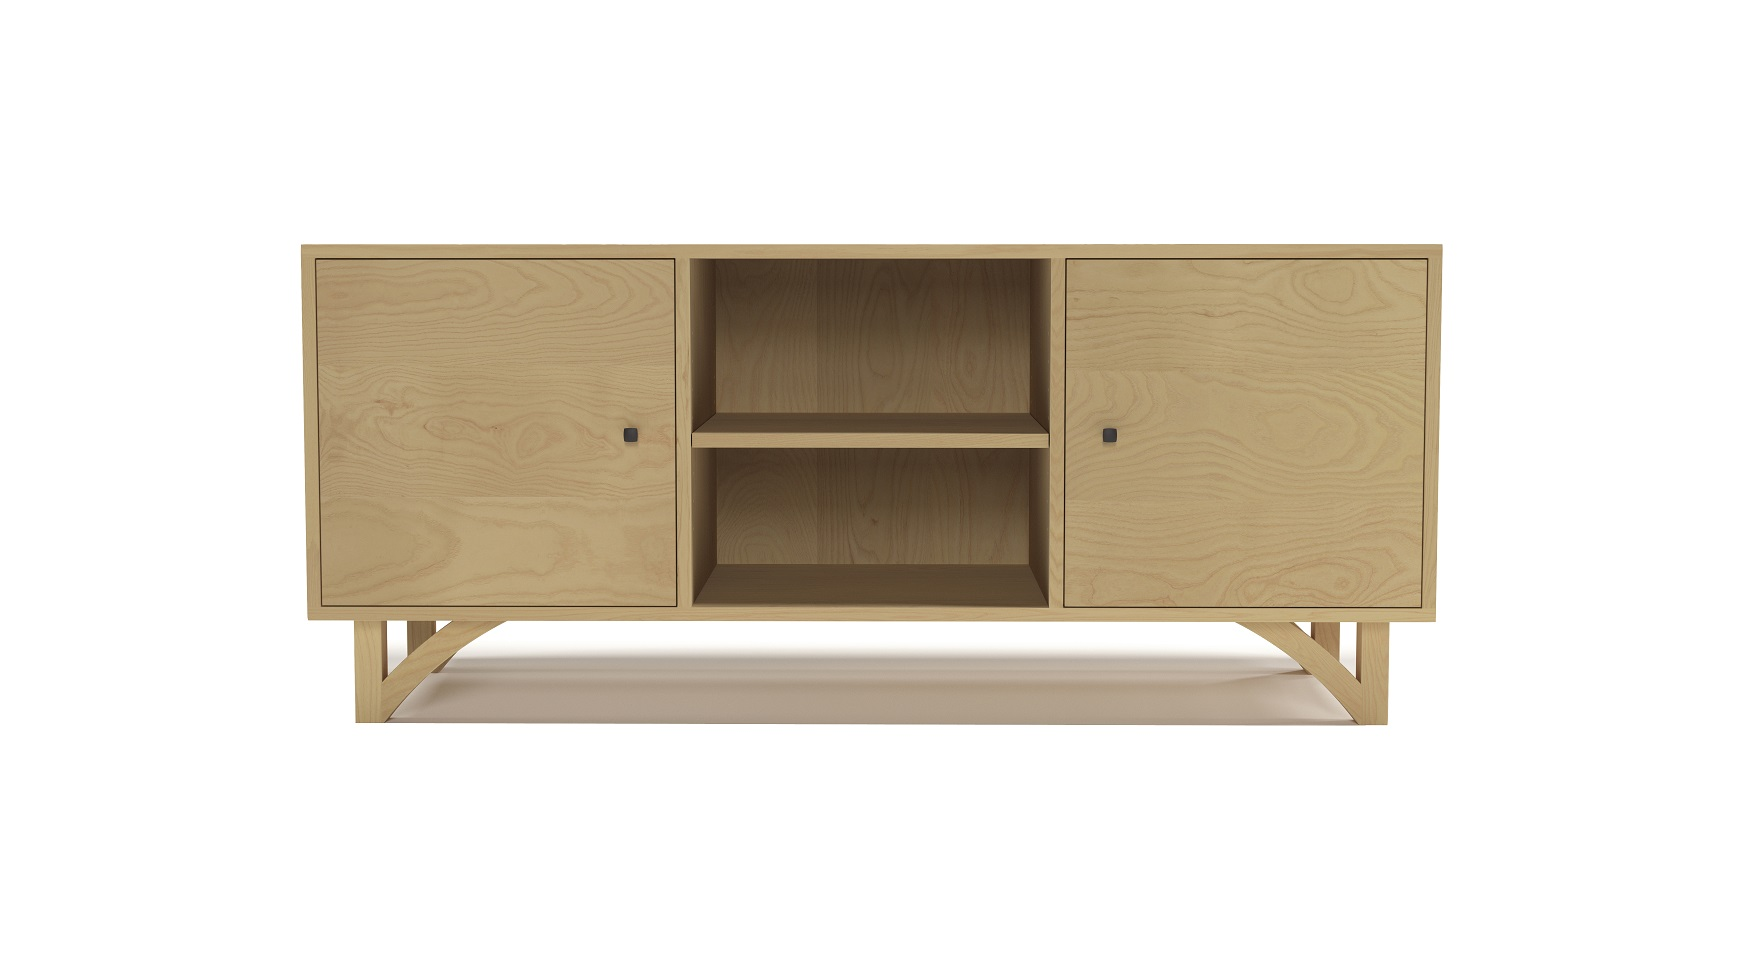 Ash modern furniture media cabinet with two doors and with hand-cut legs